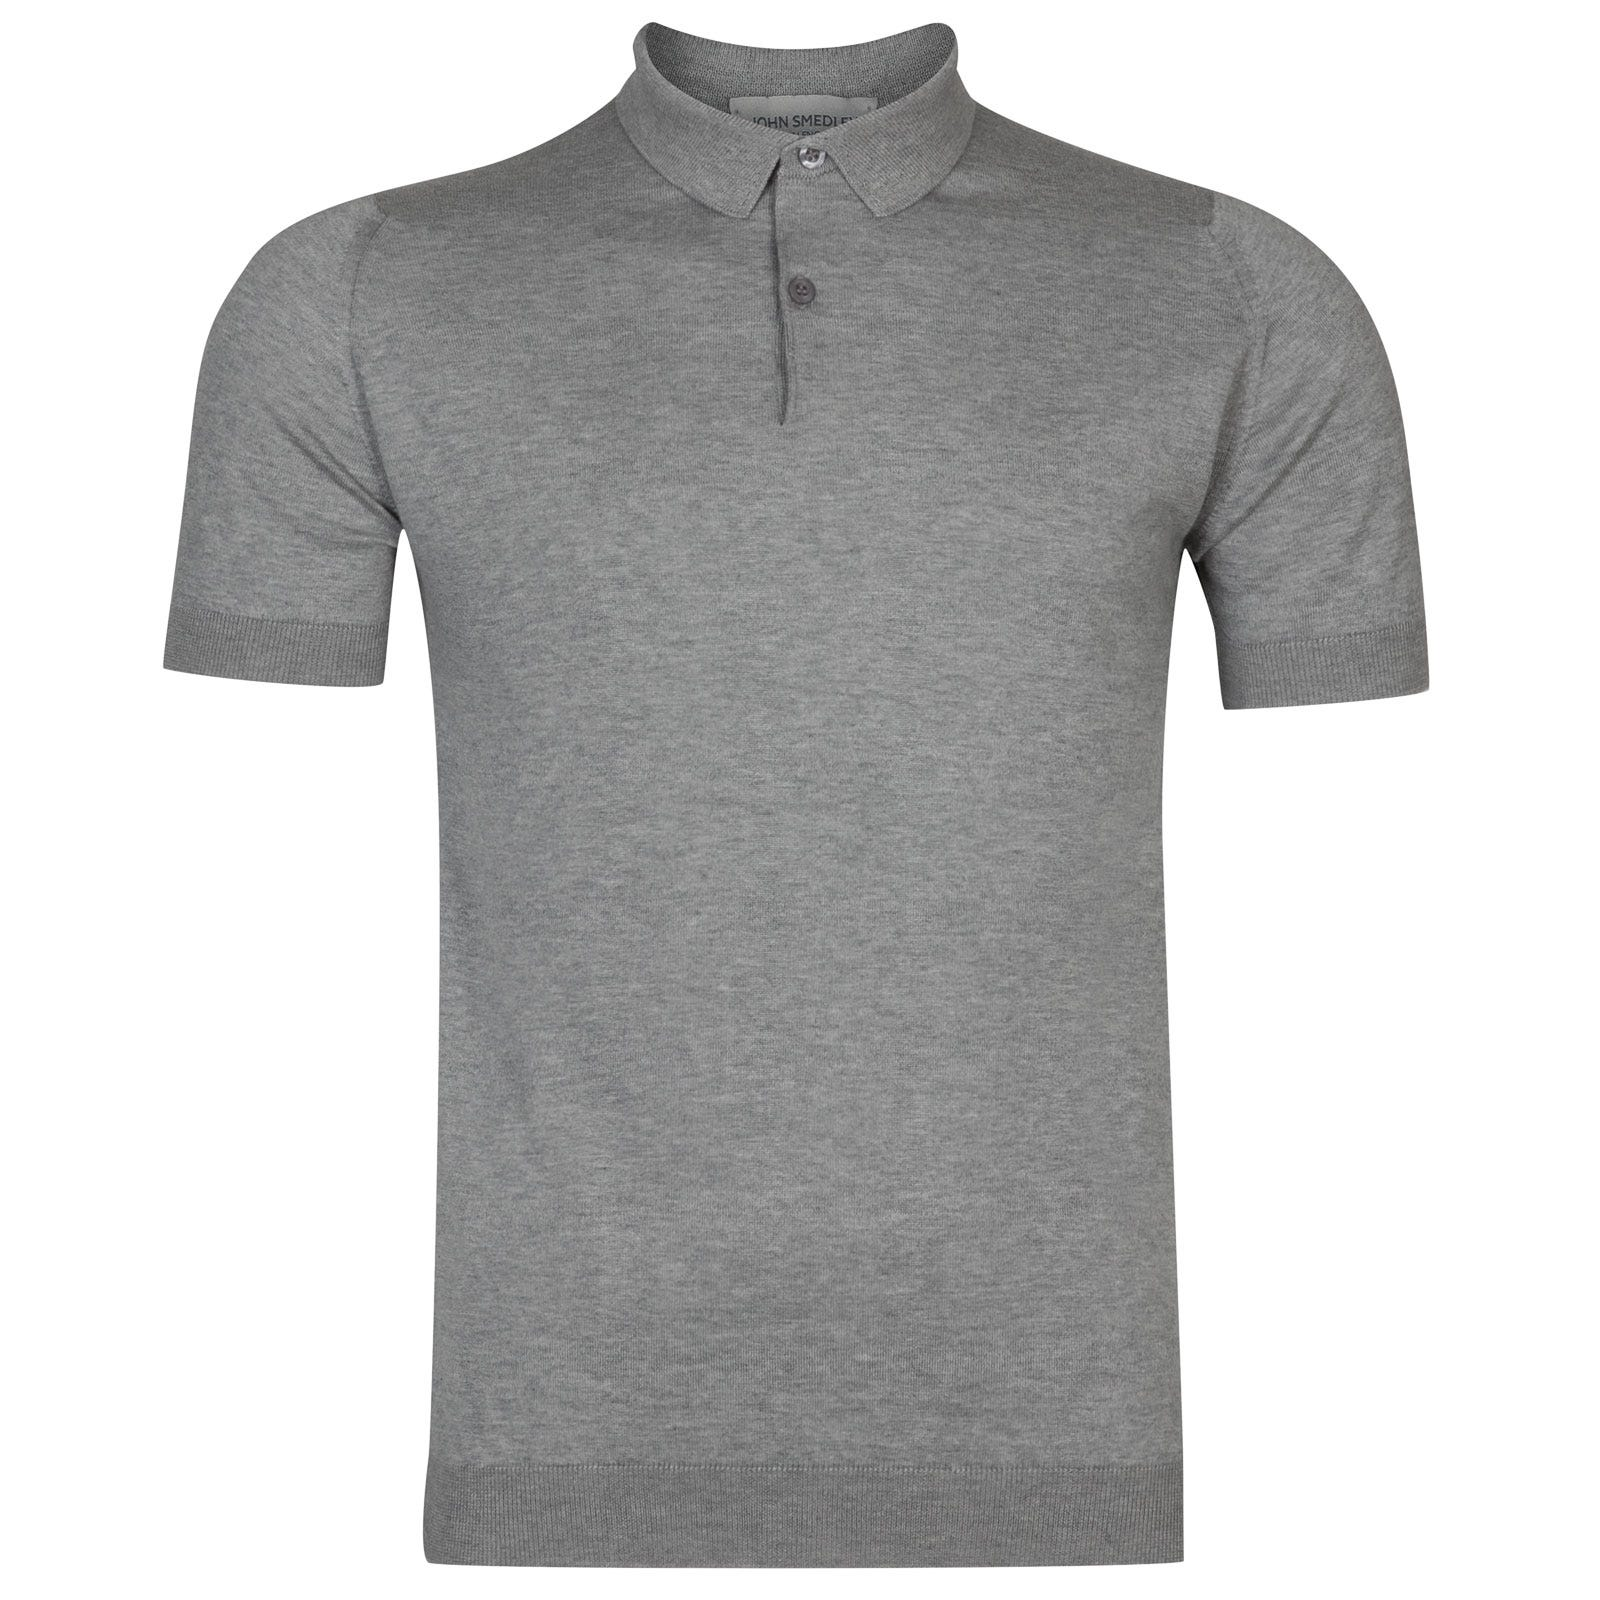 John Smedley rhodes Sea Island Cotton Shirt in Silver-M